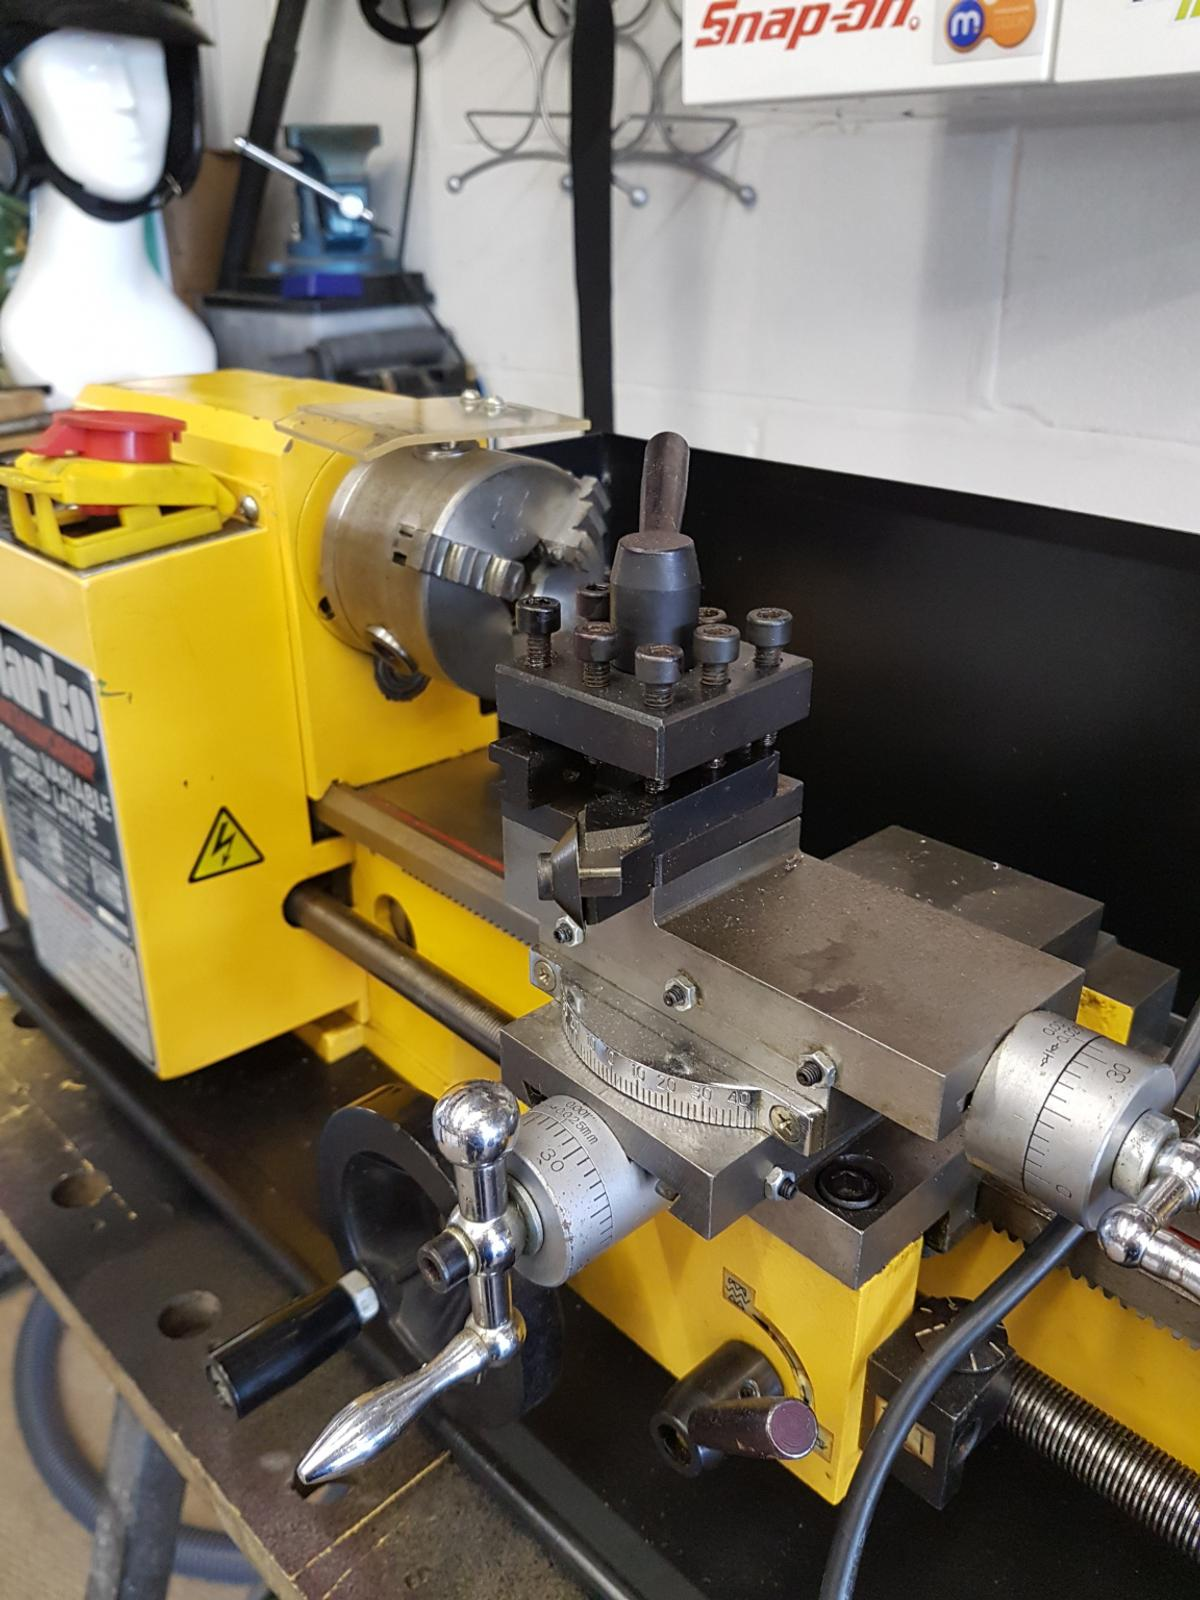 metal lathe, clarke cl300m in Wakefield for £300 00 for sale - Shpock